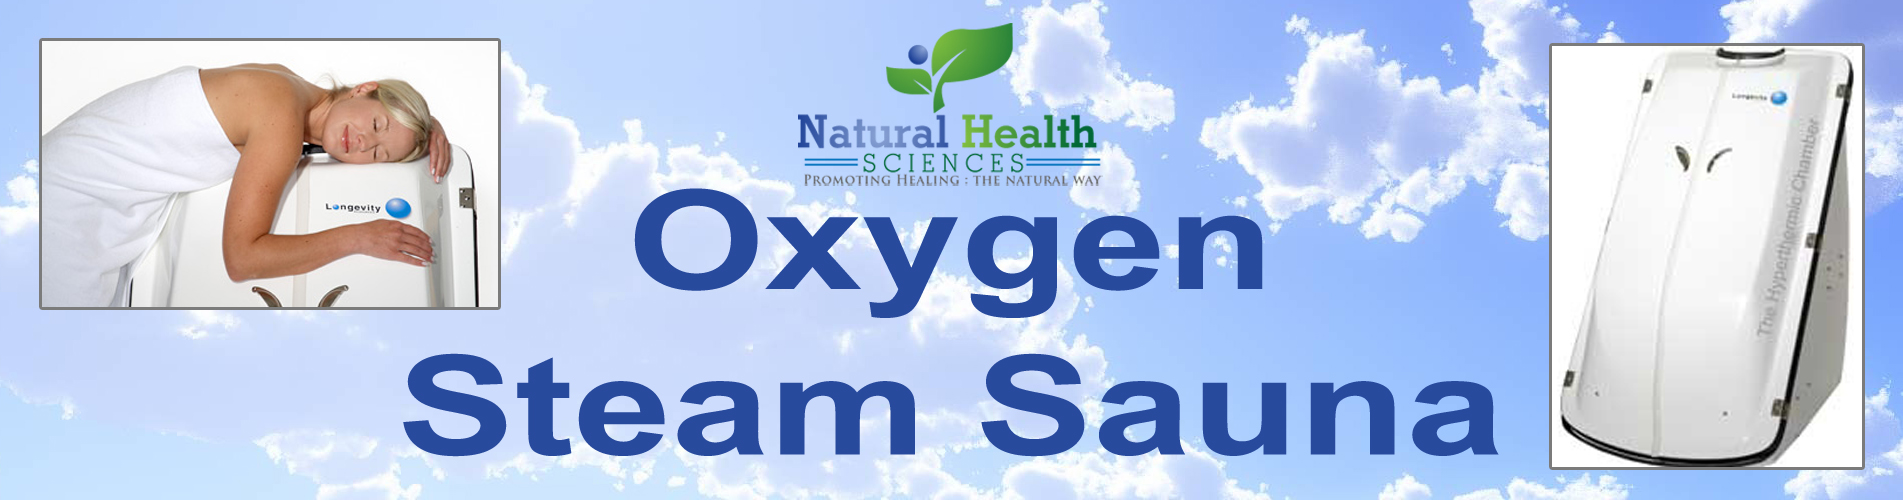 natural-health-sciences-arizona-oxygen-steam-sauna